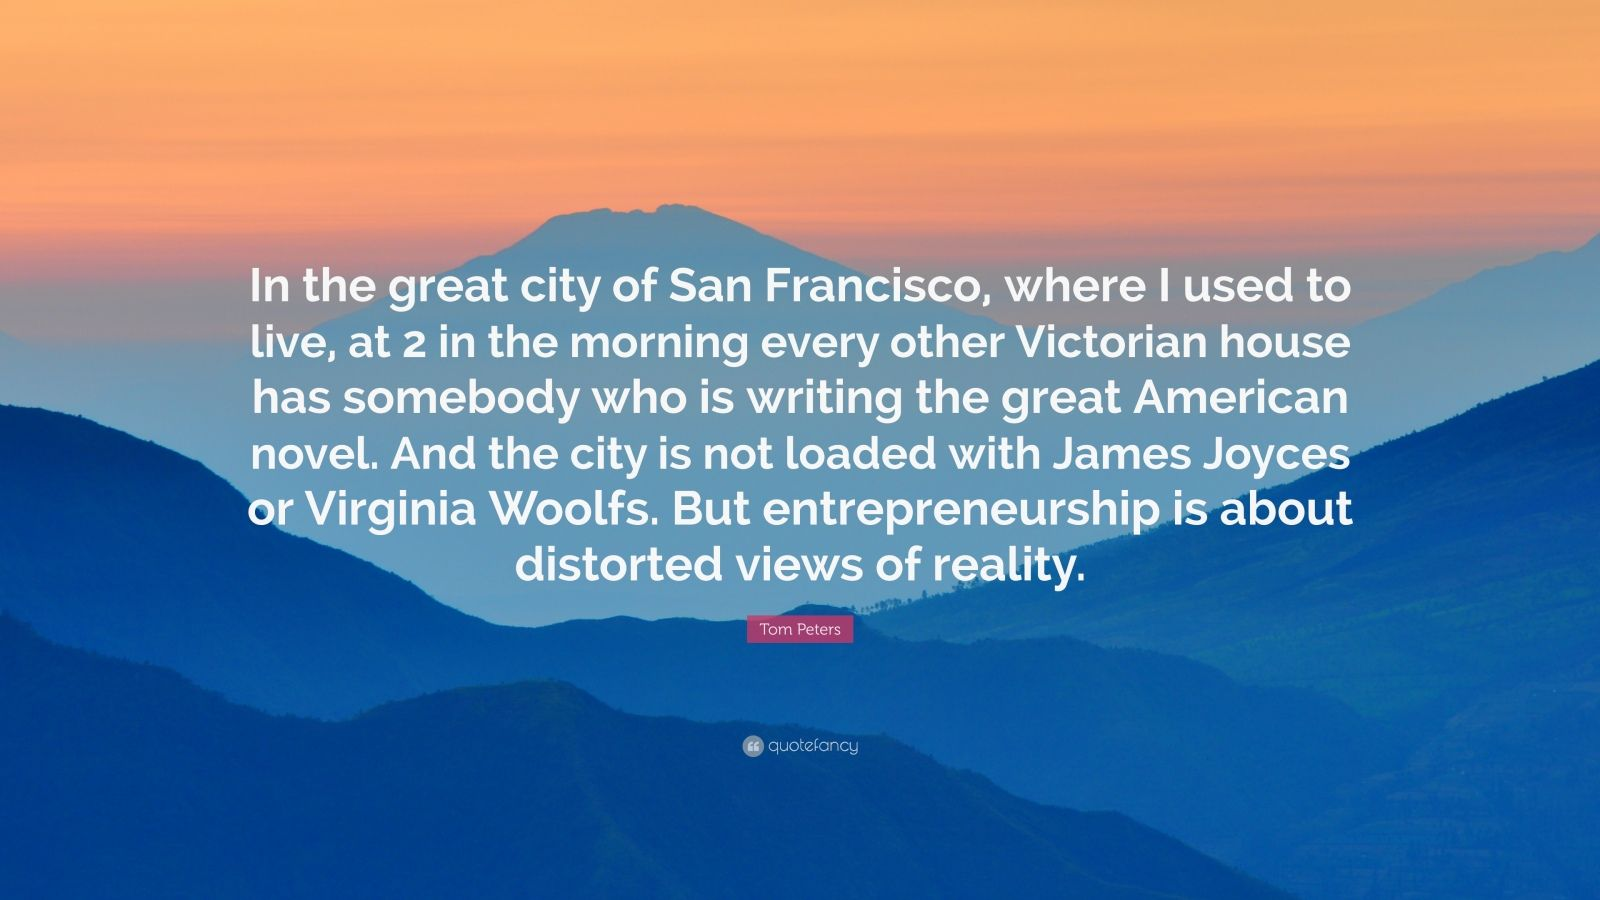 """Tom Peters Quote: """"In the great city of San Francisco, where I used to live, at 2 in the morning every other Victorian house has somebody who is writing the great American novel. And the city is not loaded with James Joyces or Virginia Woolfs. But entrepreneurship is about distorted views of reality."""""""